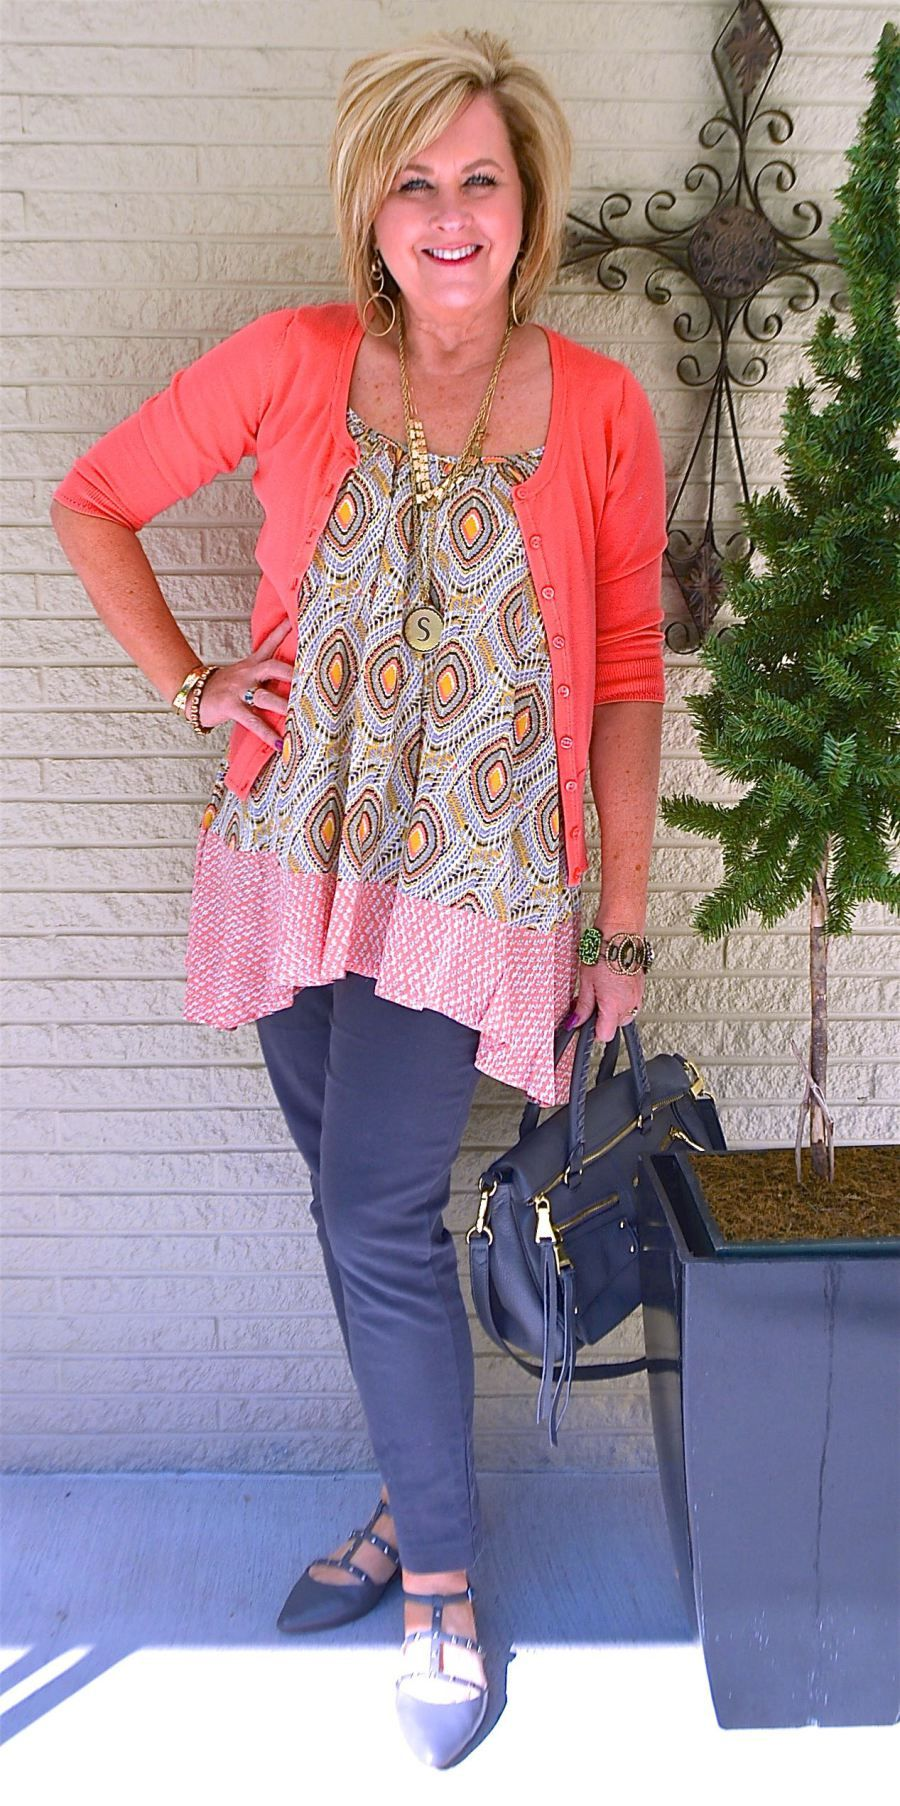 Trends For Spring Summer Clothes For Real Women Over 40: CUTE AND FLIRTY FOR SUMMER